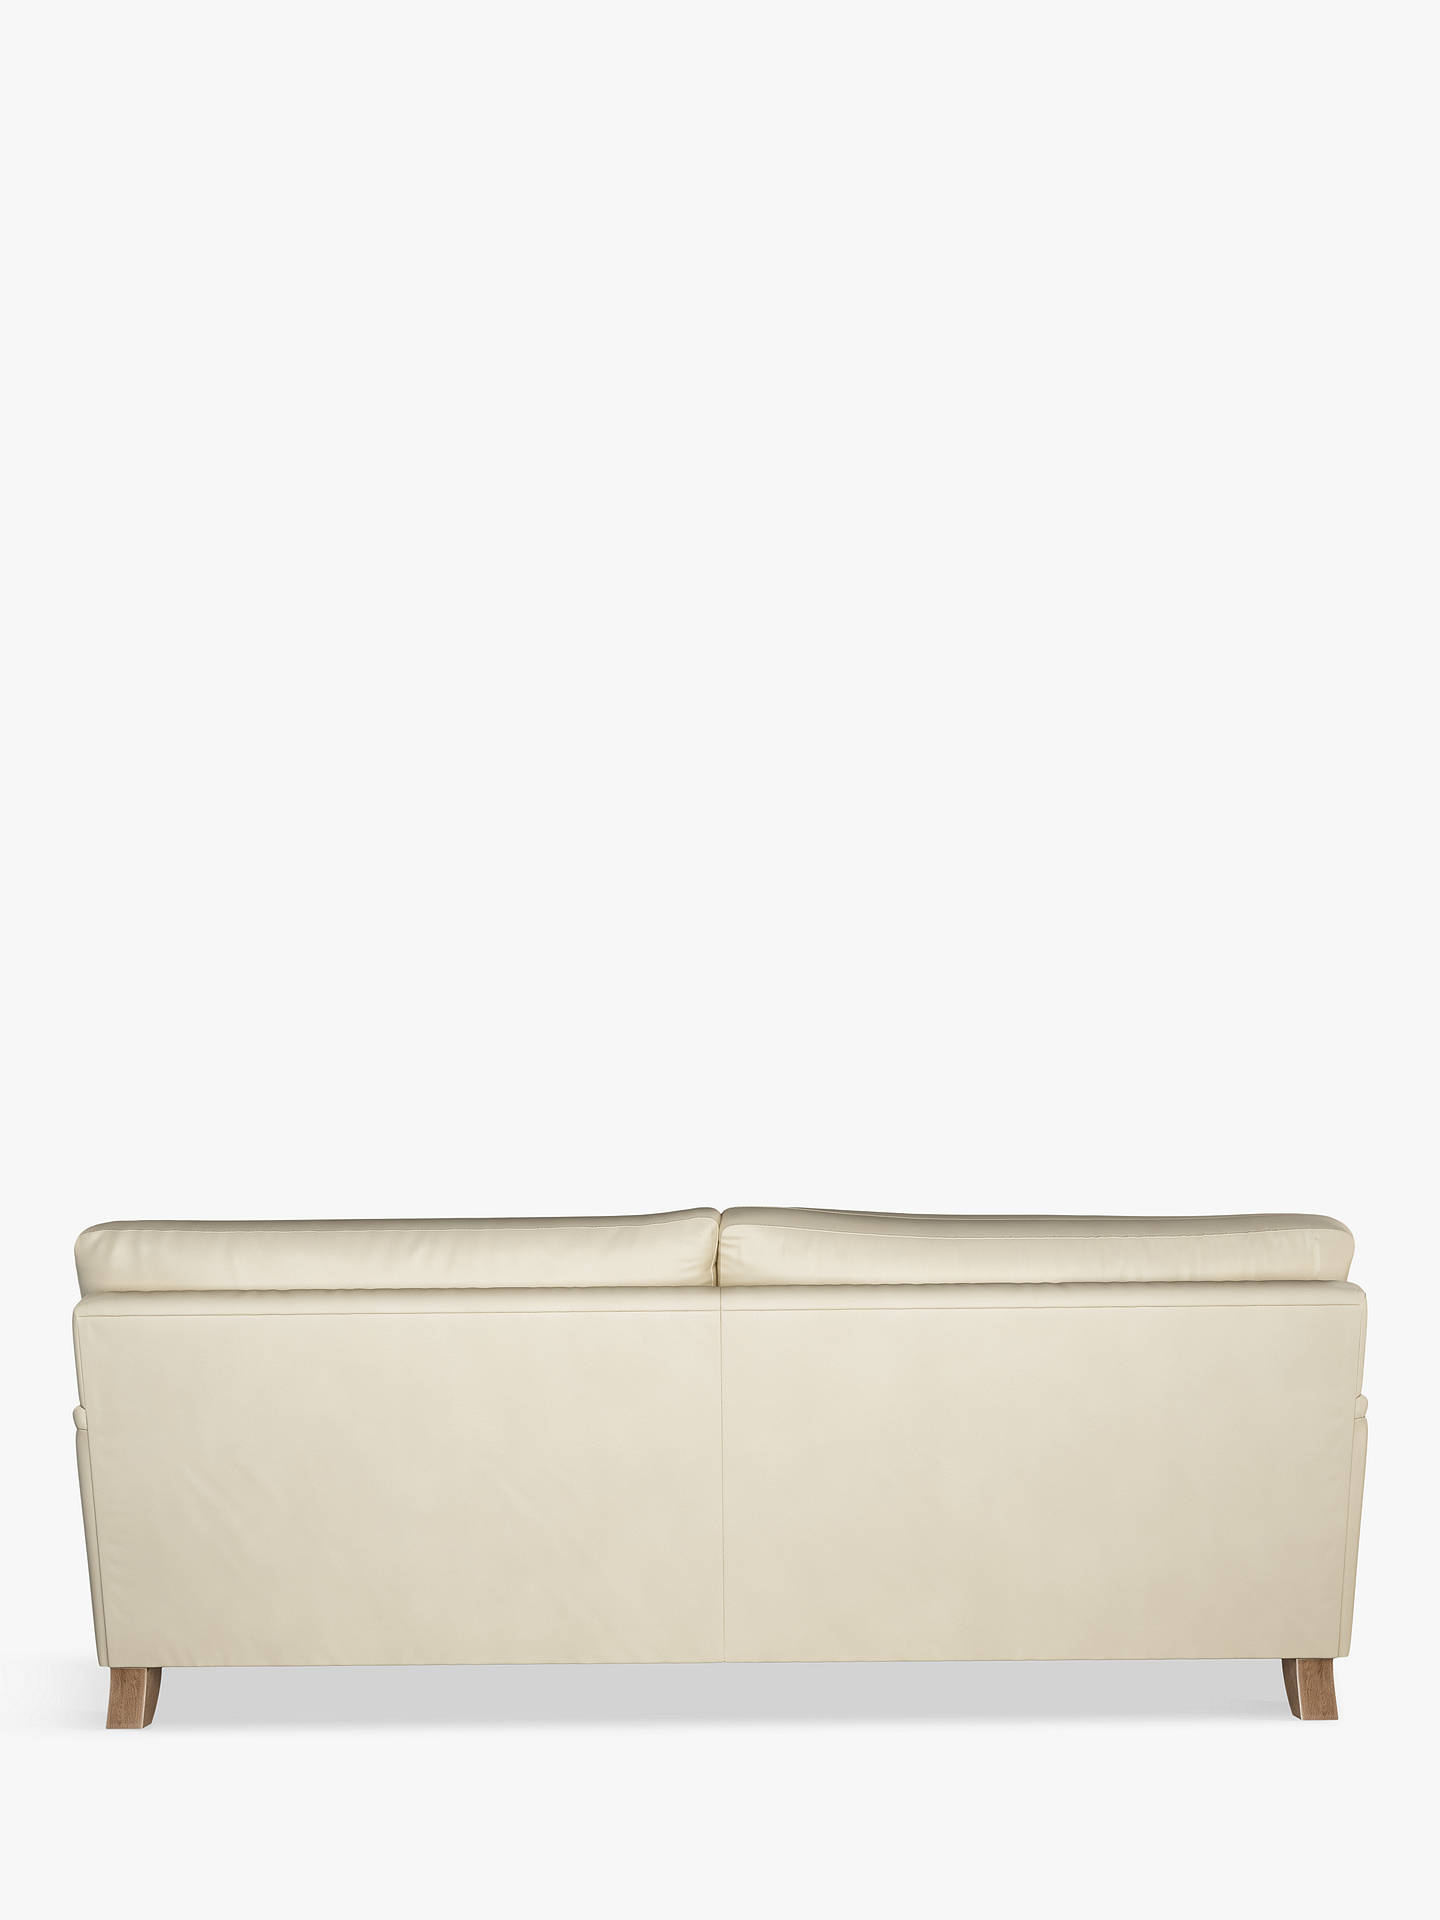 Buy John Lewis & Partners Otley Grand 4 Seater Leather Sofa, Dark Leg, Contempo Ivory Online at johnlewis.com